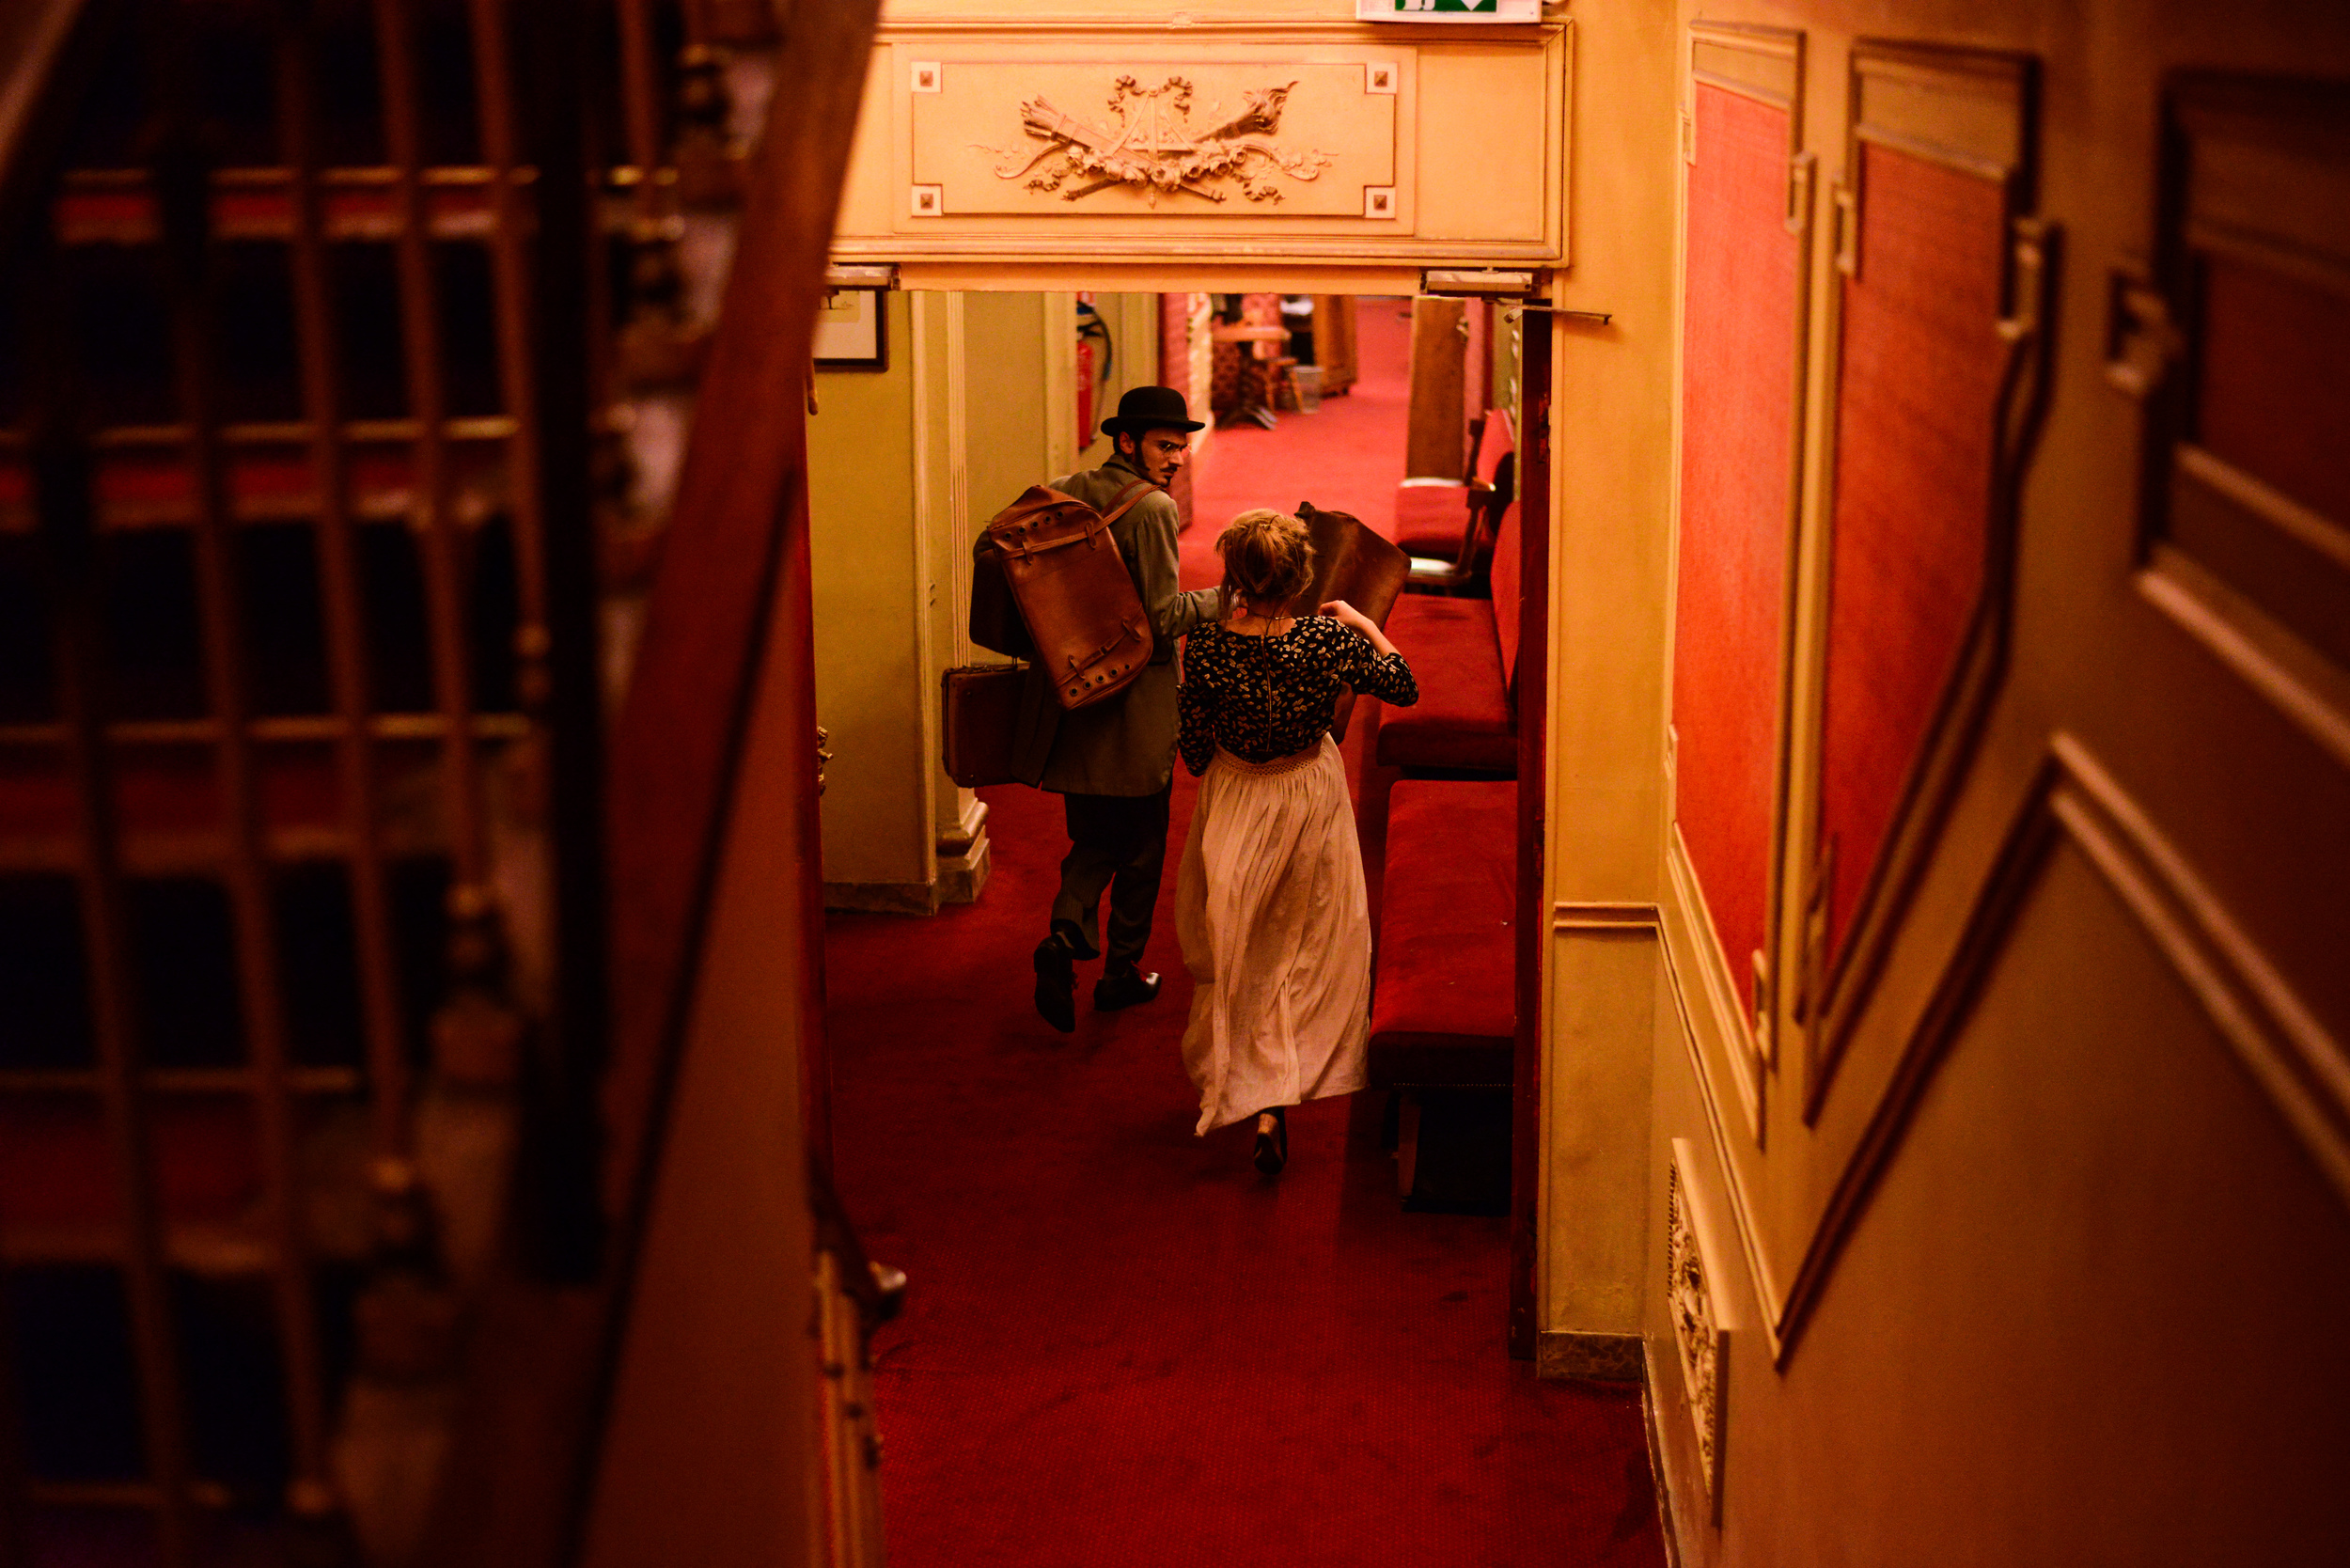 Actress Eva Le Saux Madézo, right, and actor Louis Choukroun, rush through a corridor to the next scene of a musical in which they play at Déjazet theater in Paris on April 10, 2014.